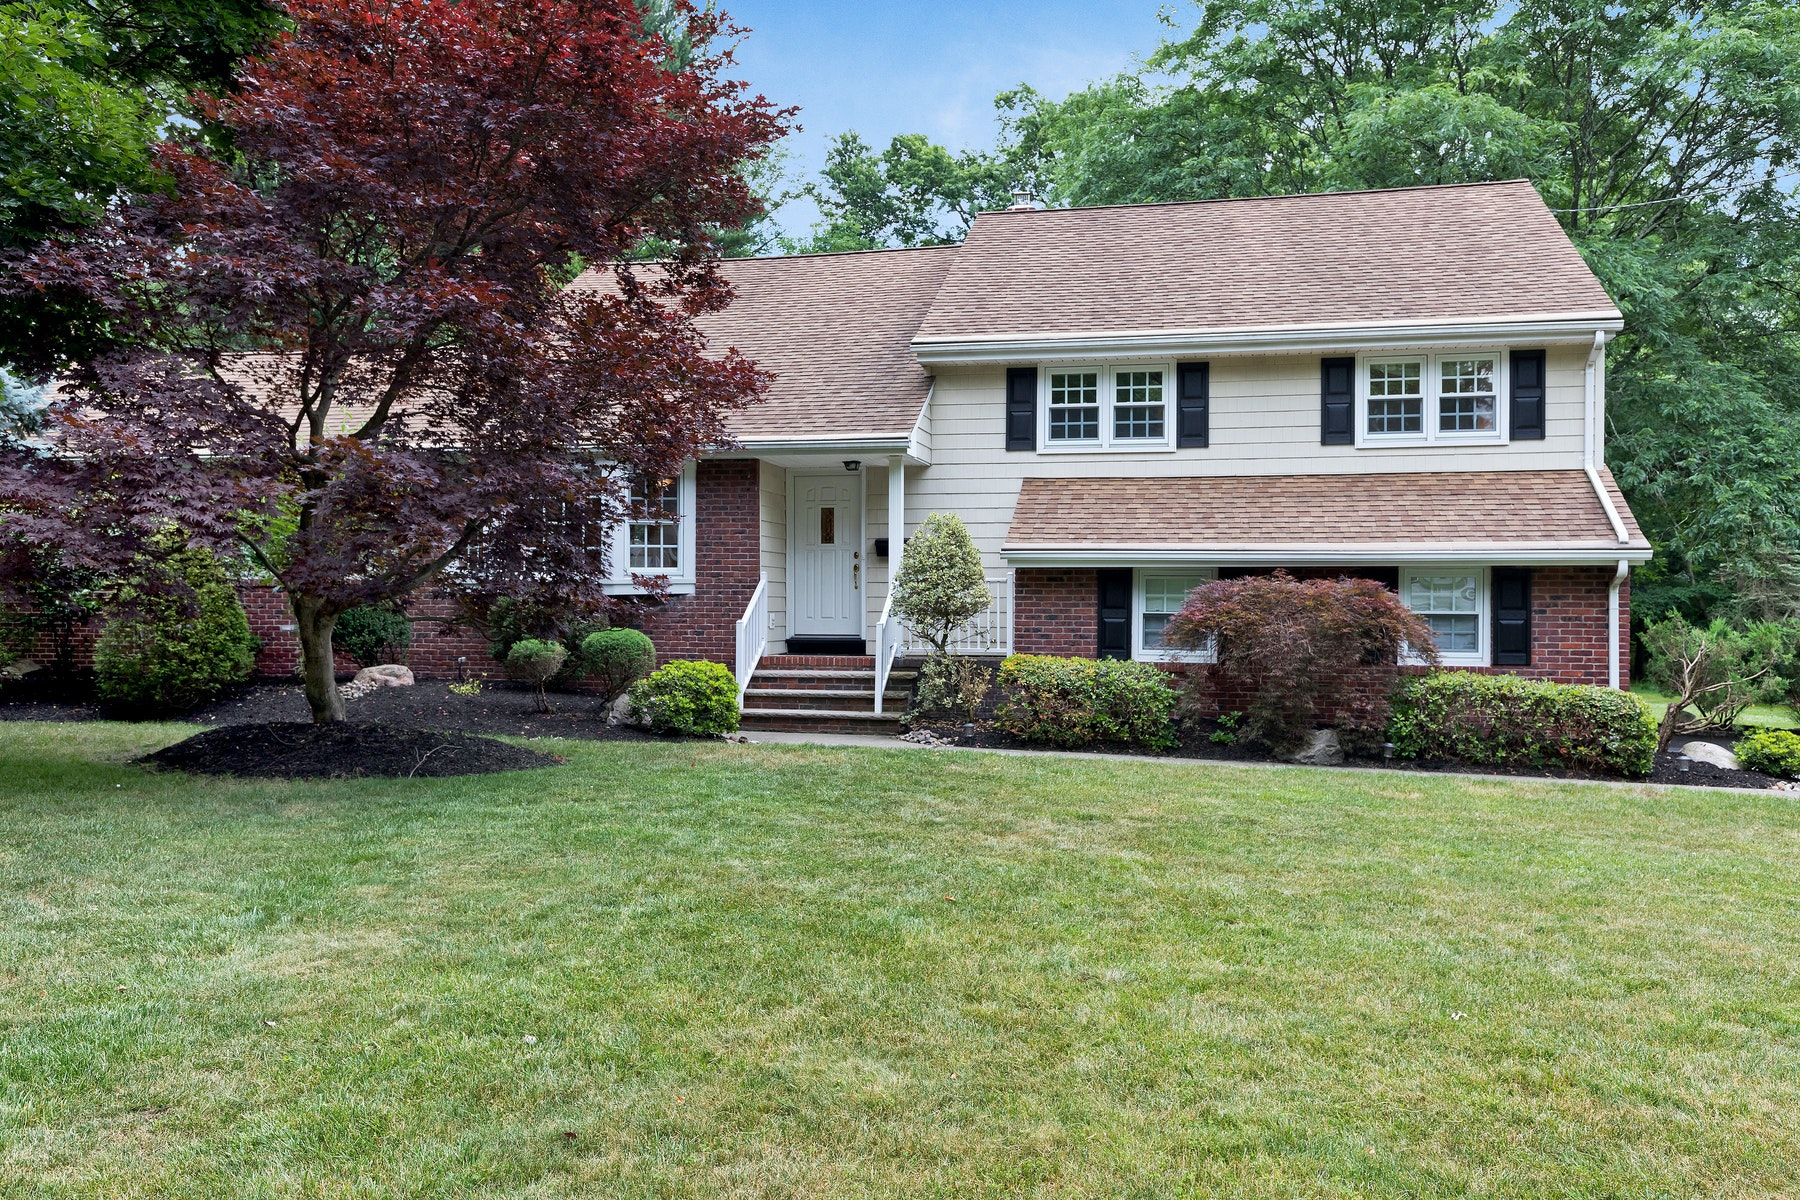 Single Family Homes for Active at Updated Split Level Home 1952 Inverness Drive Scotch Plains, New Jersey 07076 United States